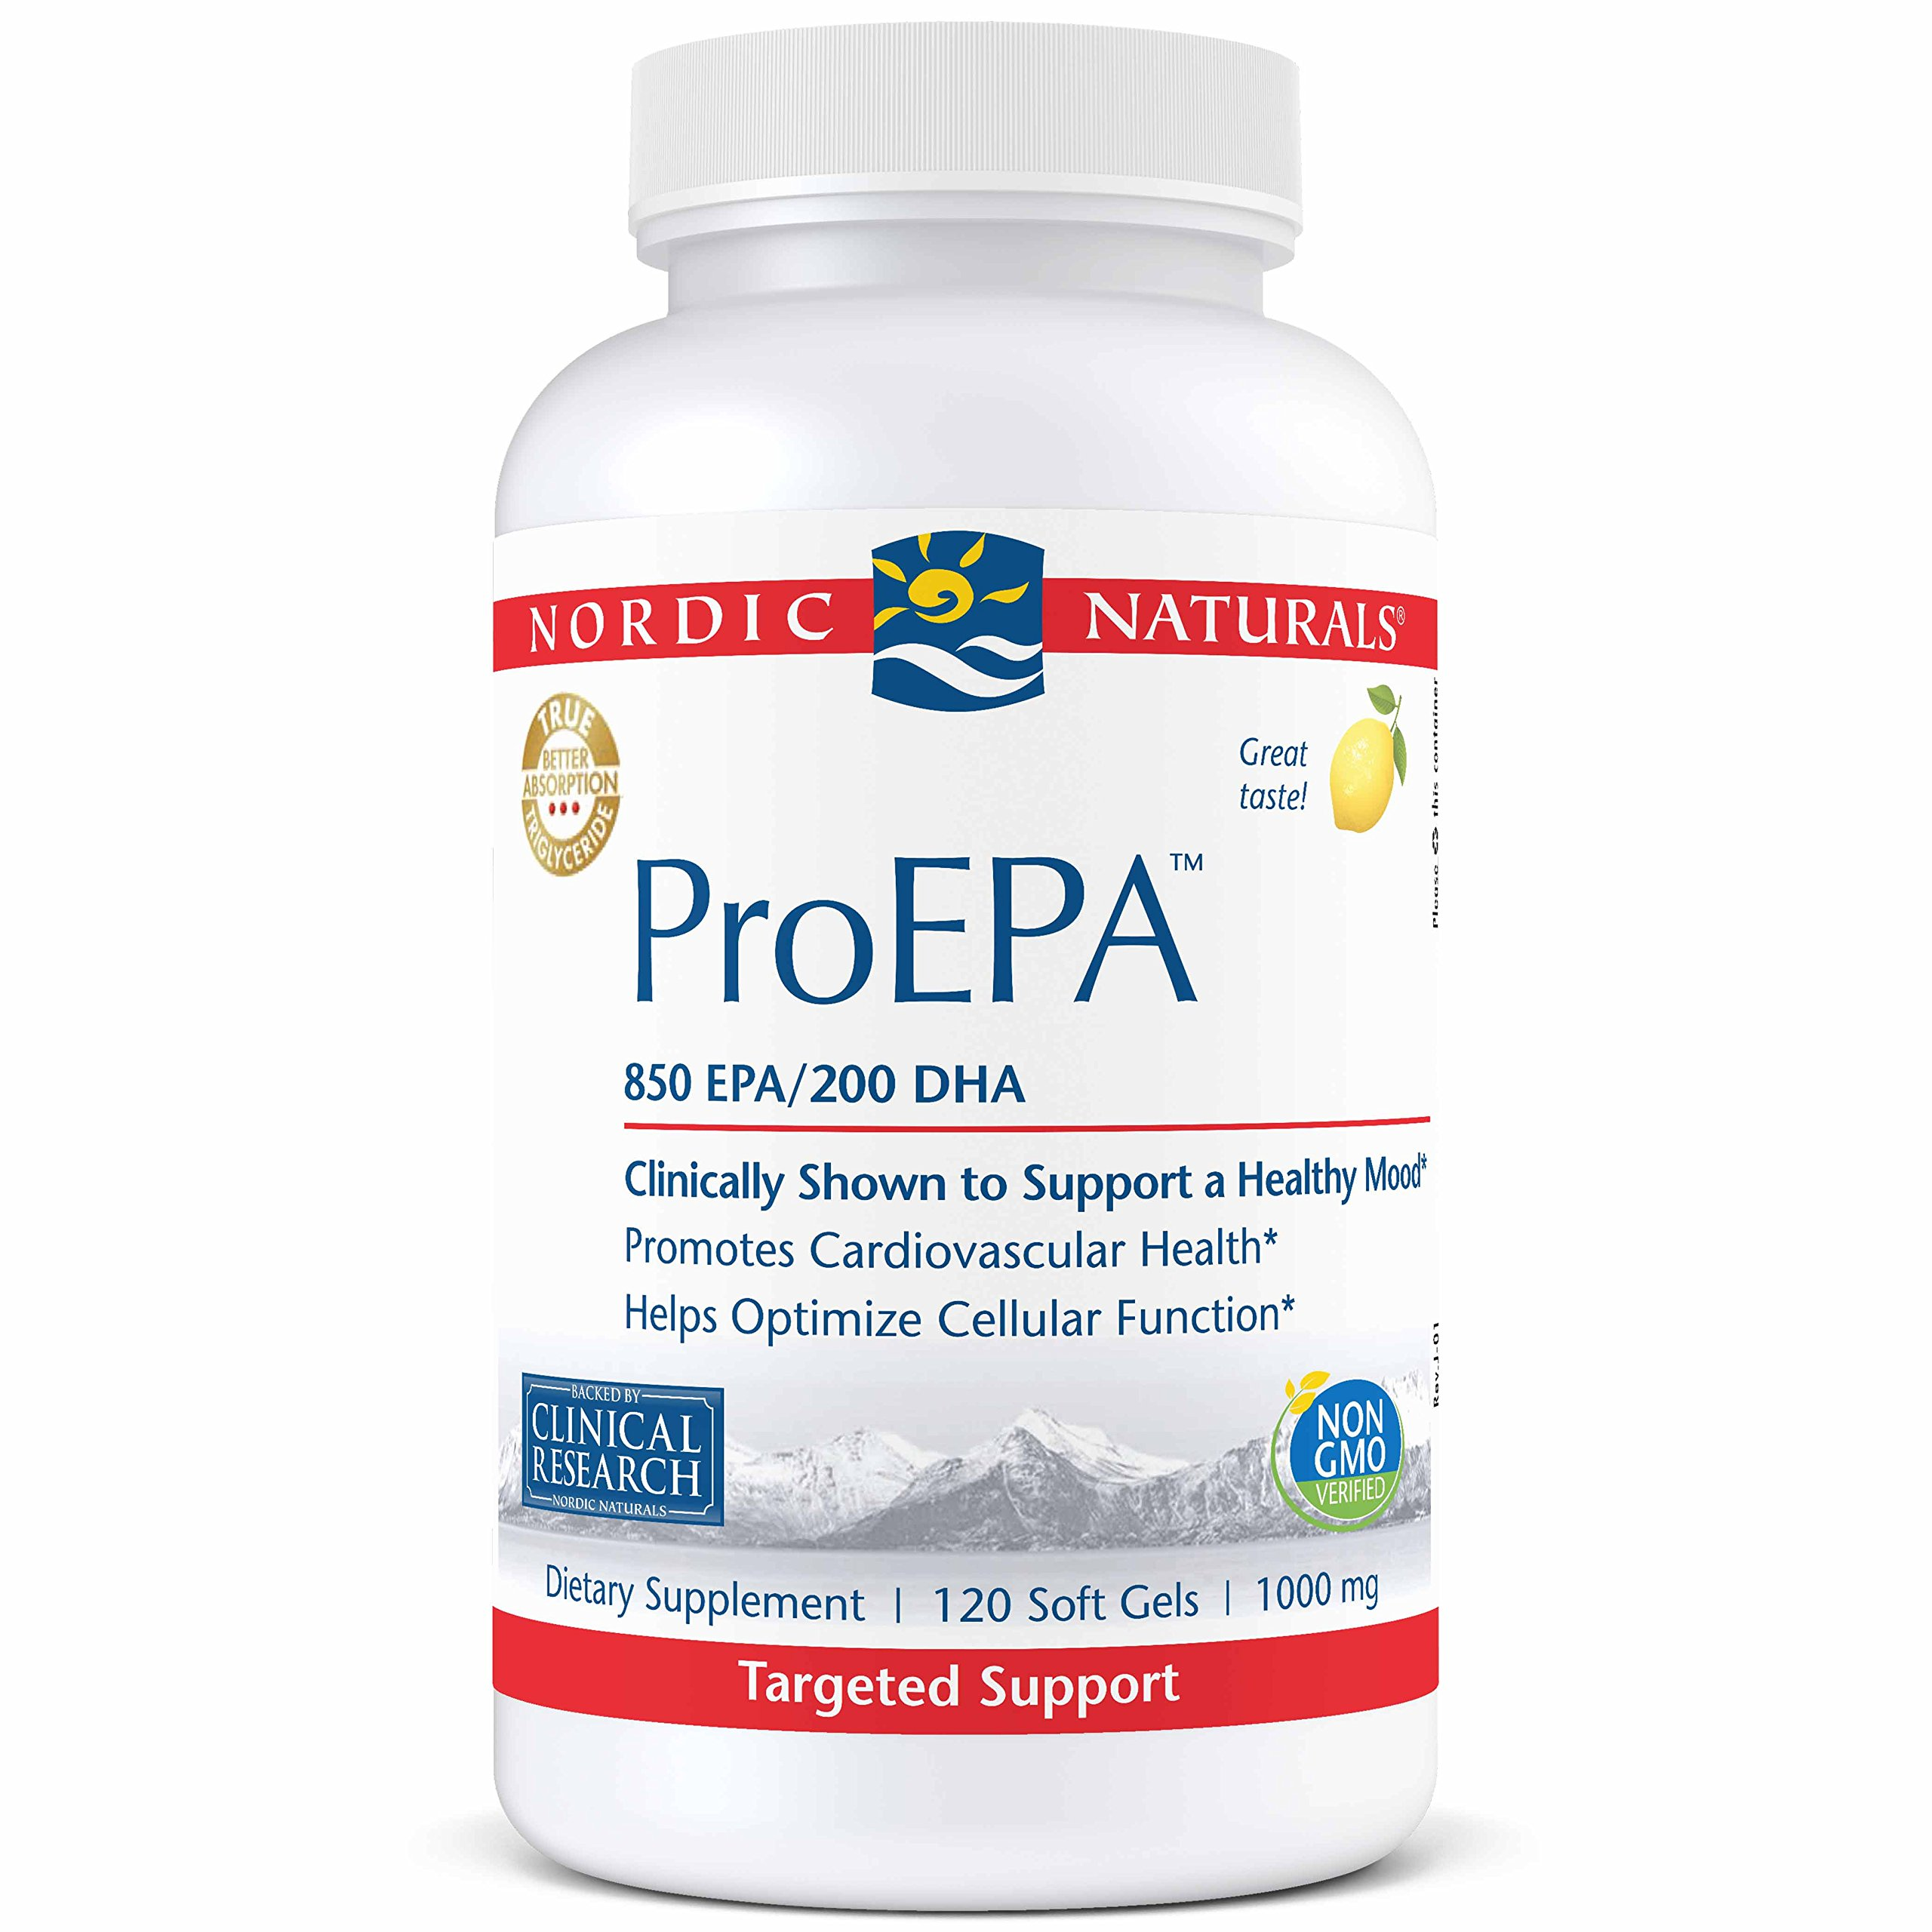 Nordic Naturals ProEPA - Fish Oil, 850 mg EPA, 200 mg DHA, Targeted Support for Cardiovascular Health, a Healthy Mood, and Optimal Cellular Function*, Lemon Flavor, 120 Soft Gels by Nordic Naturals